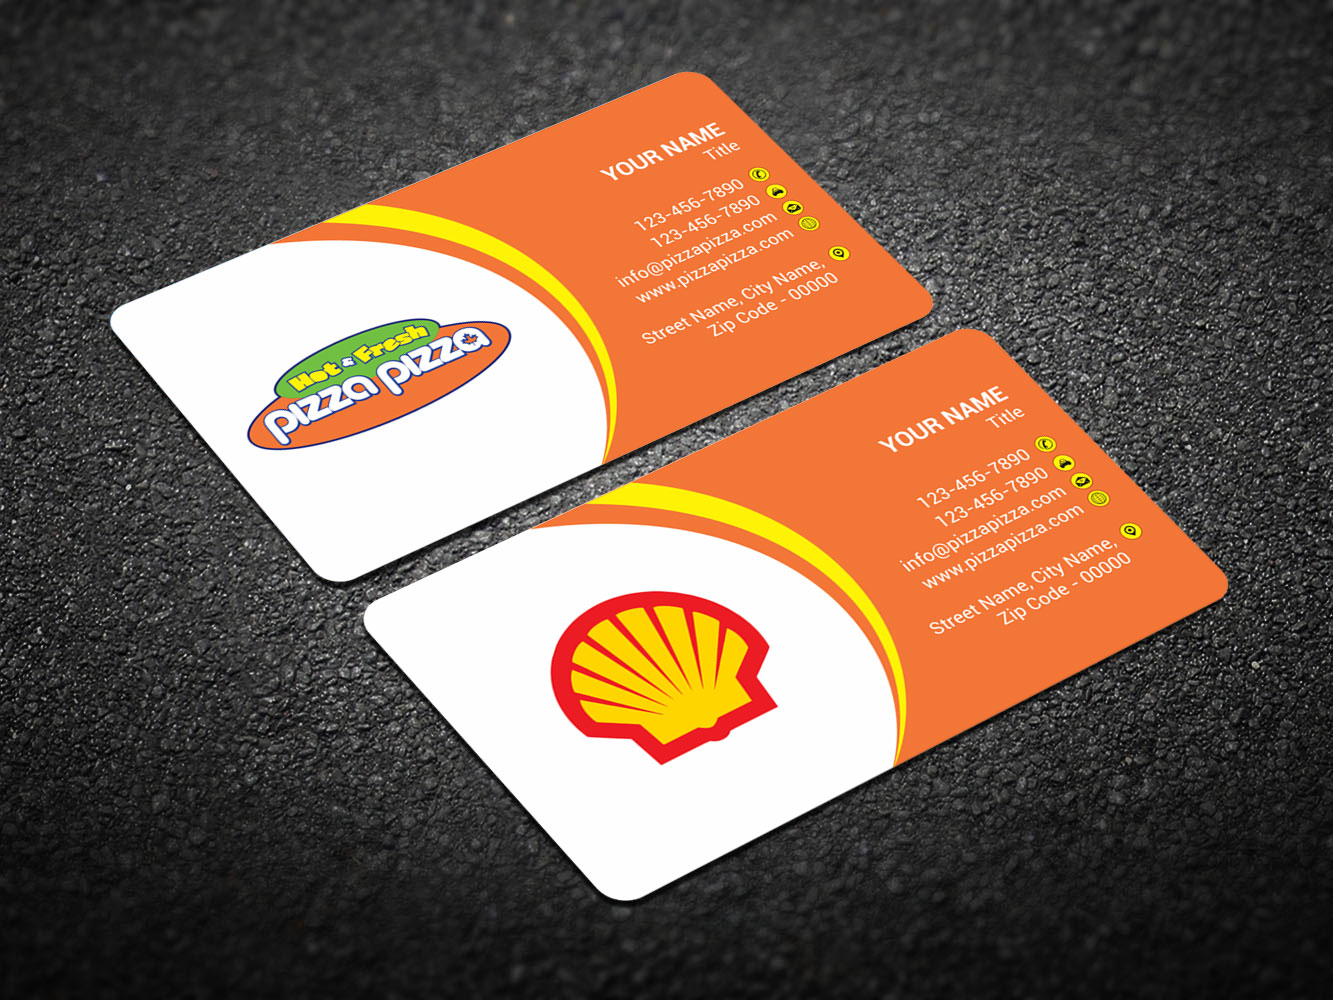 Serious modern restaurant business card design for shell gas business card design by madhuraminfotech for shell gas station design 14105448 colourmoves